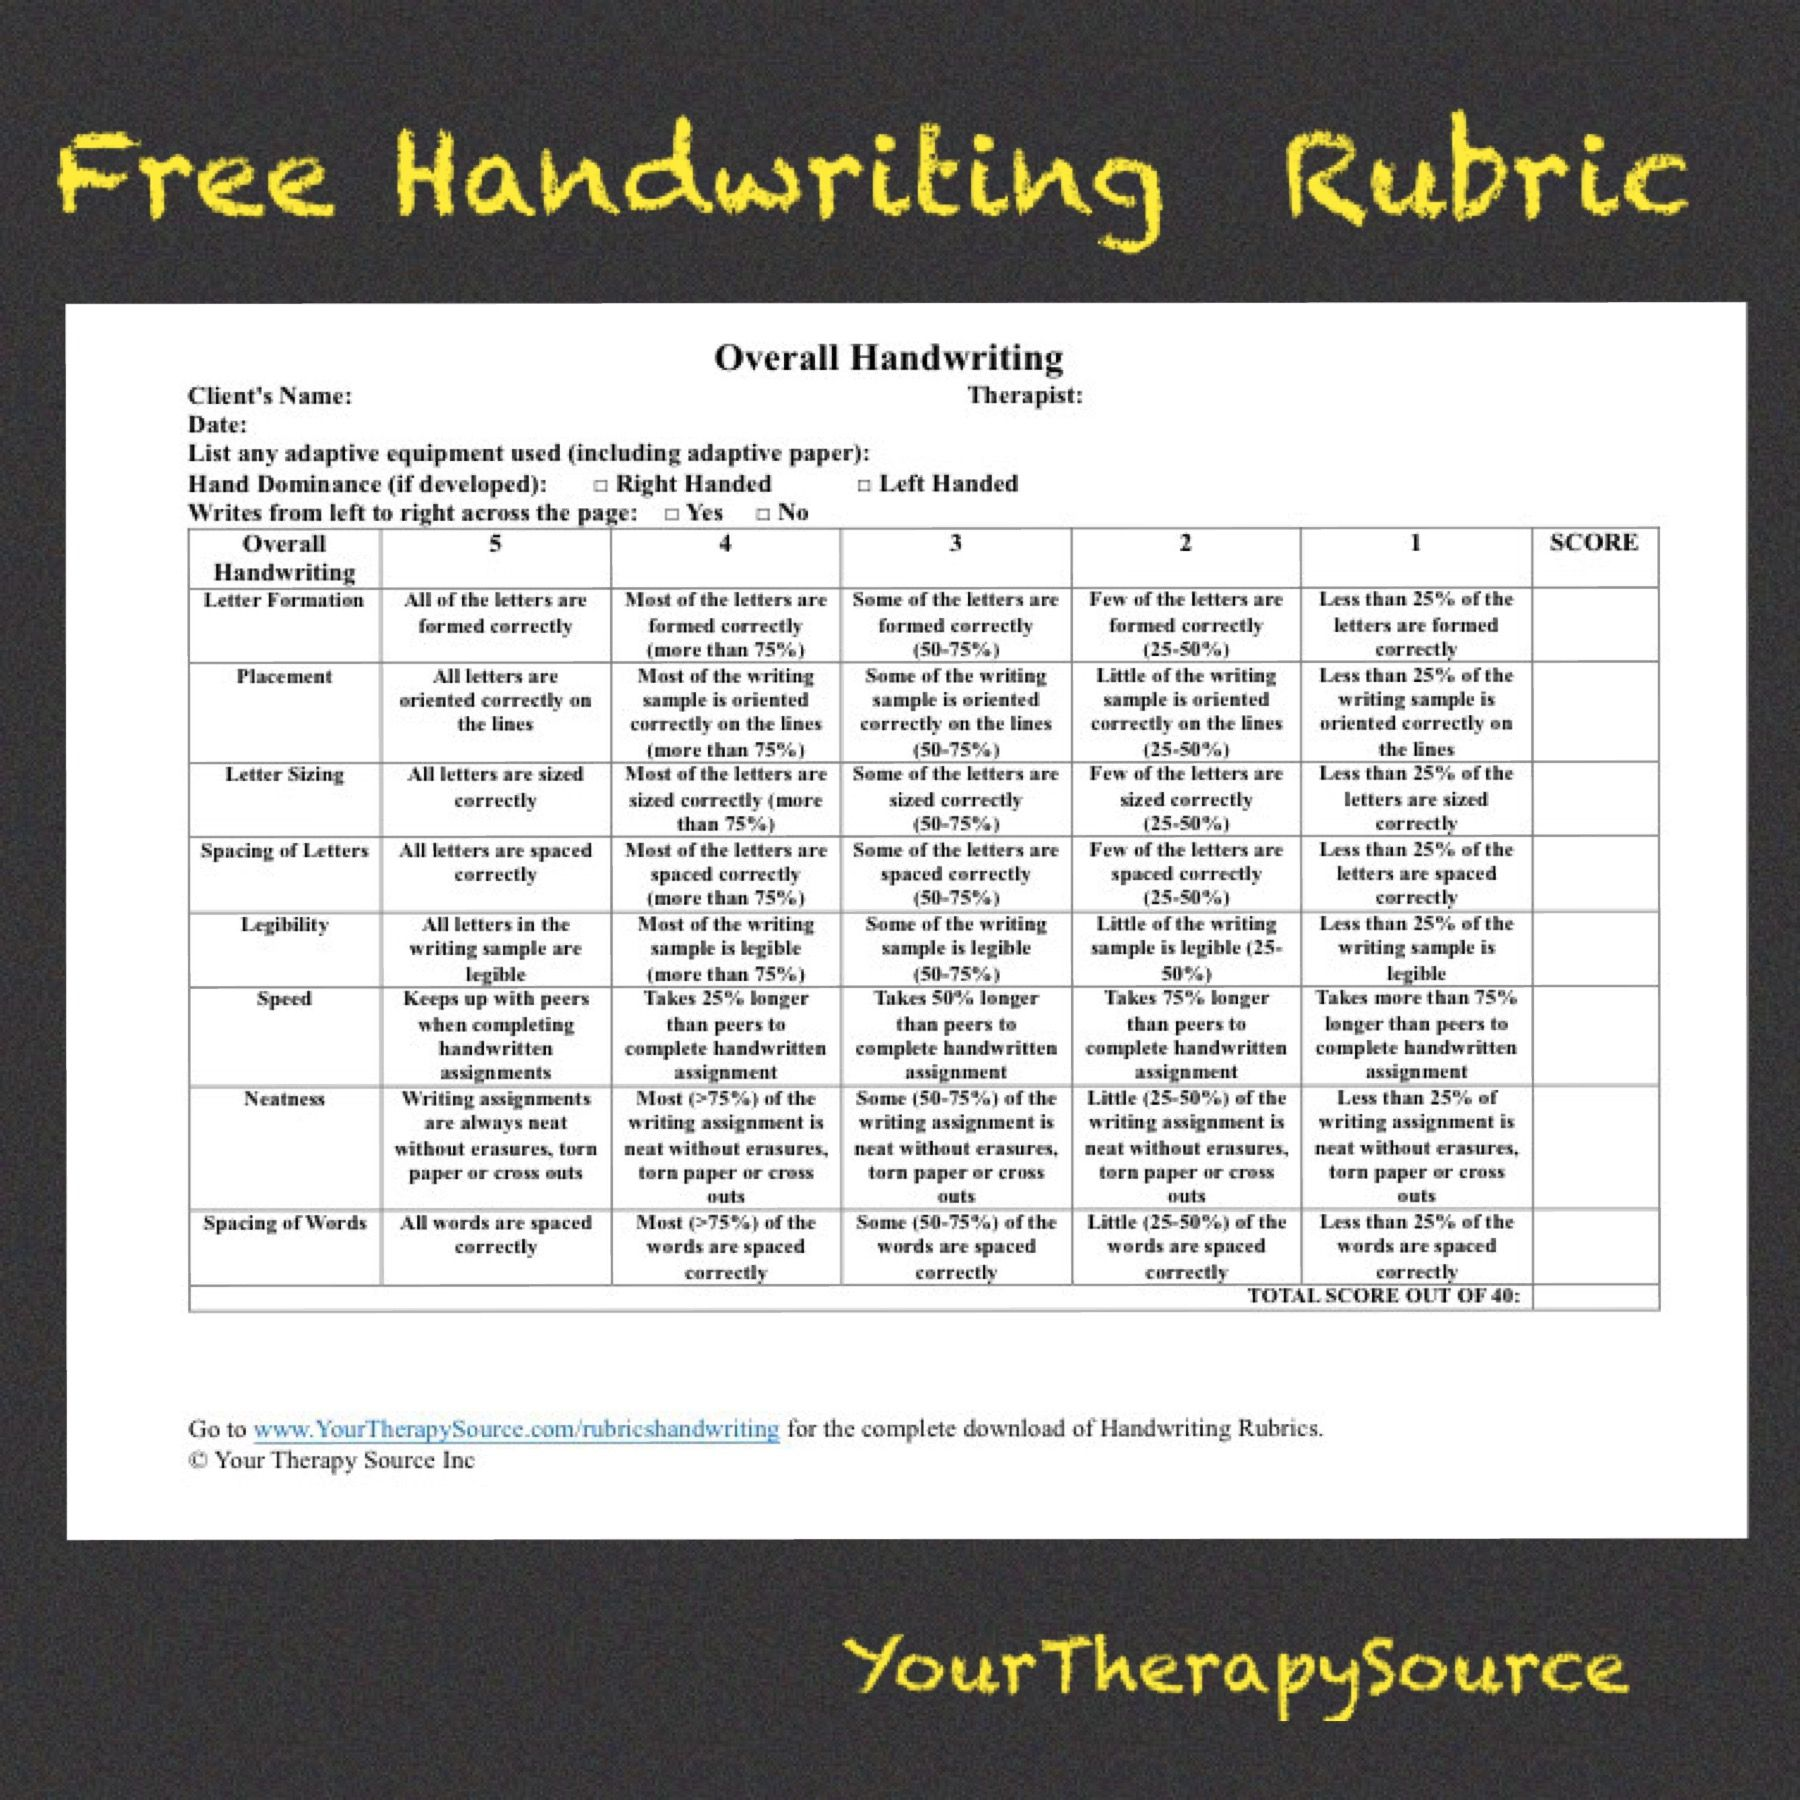 Free Handwriting Rubric From Your Therapy Source